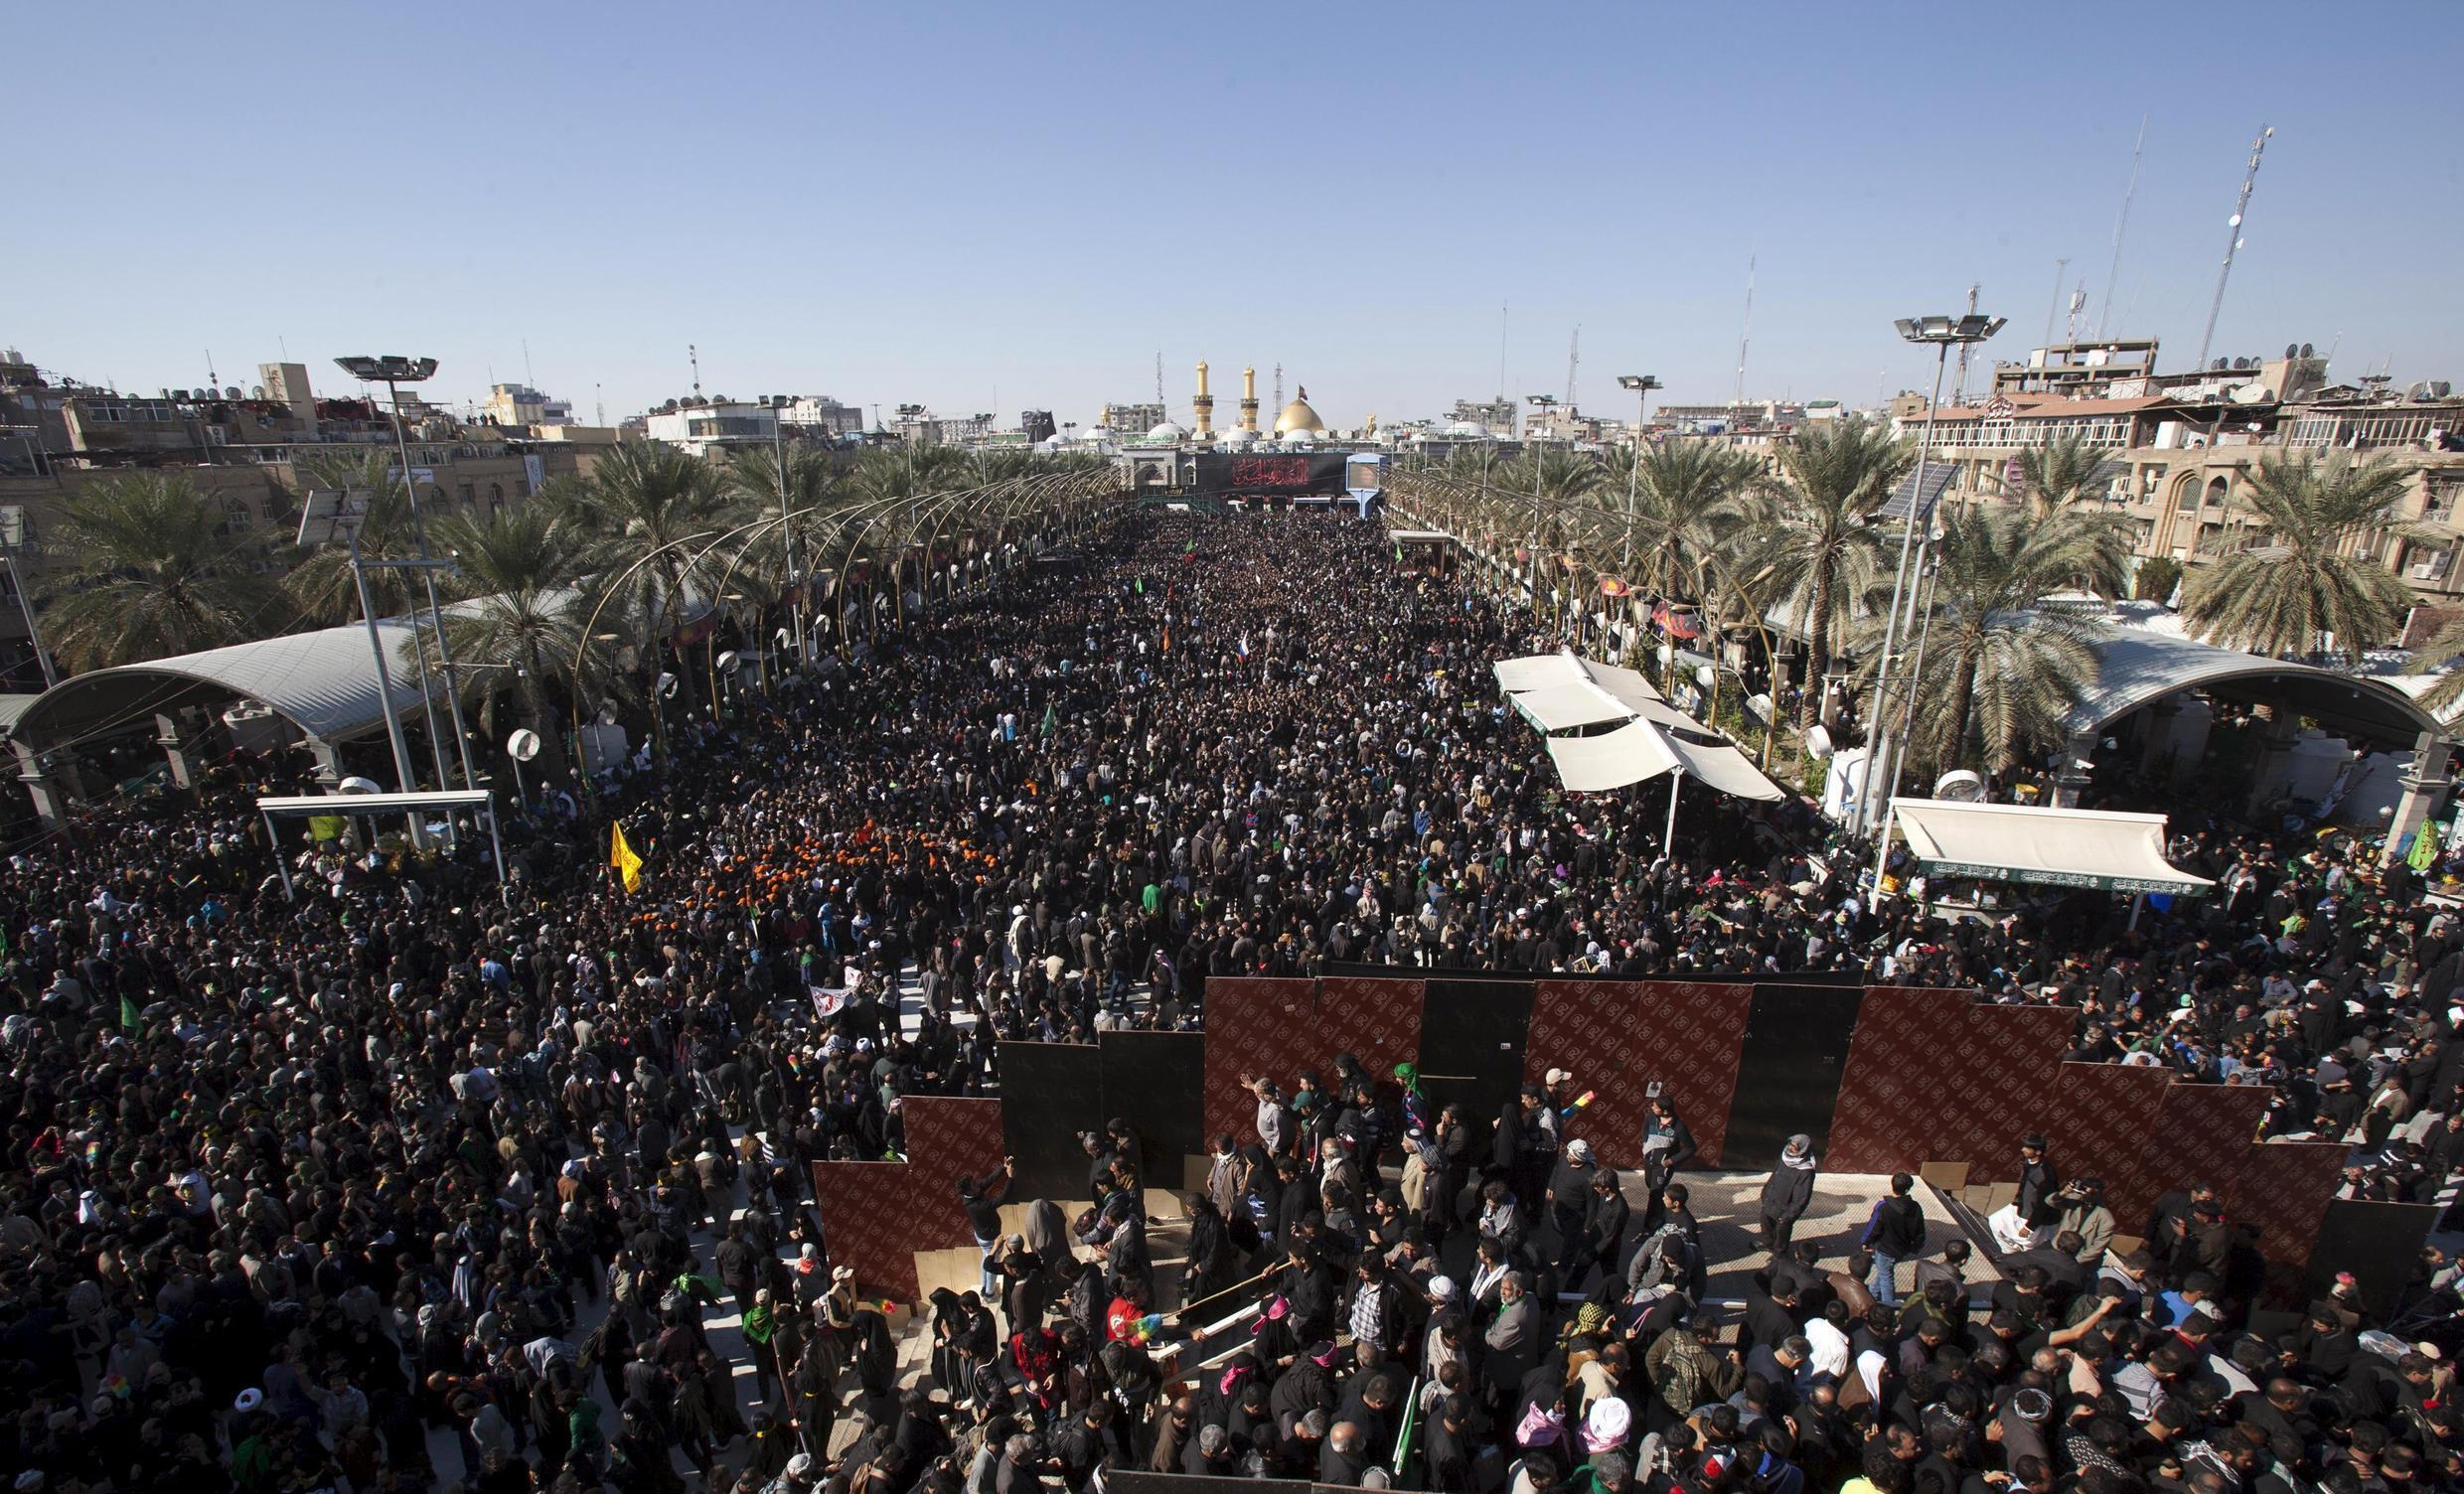 Shi'ite Muslim pilgrims in Iraq gather for a religious ceremony to observe Arbaeen, which marks the end of a 40-day mourning period following Ashura, in Kerbala, south of Baghdad.